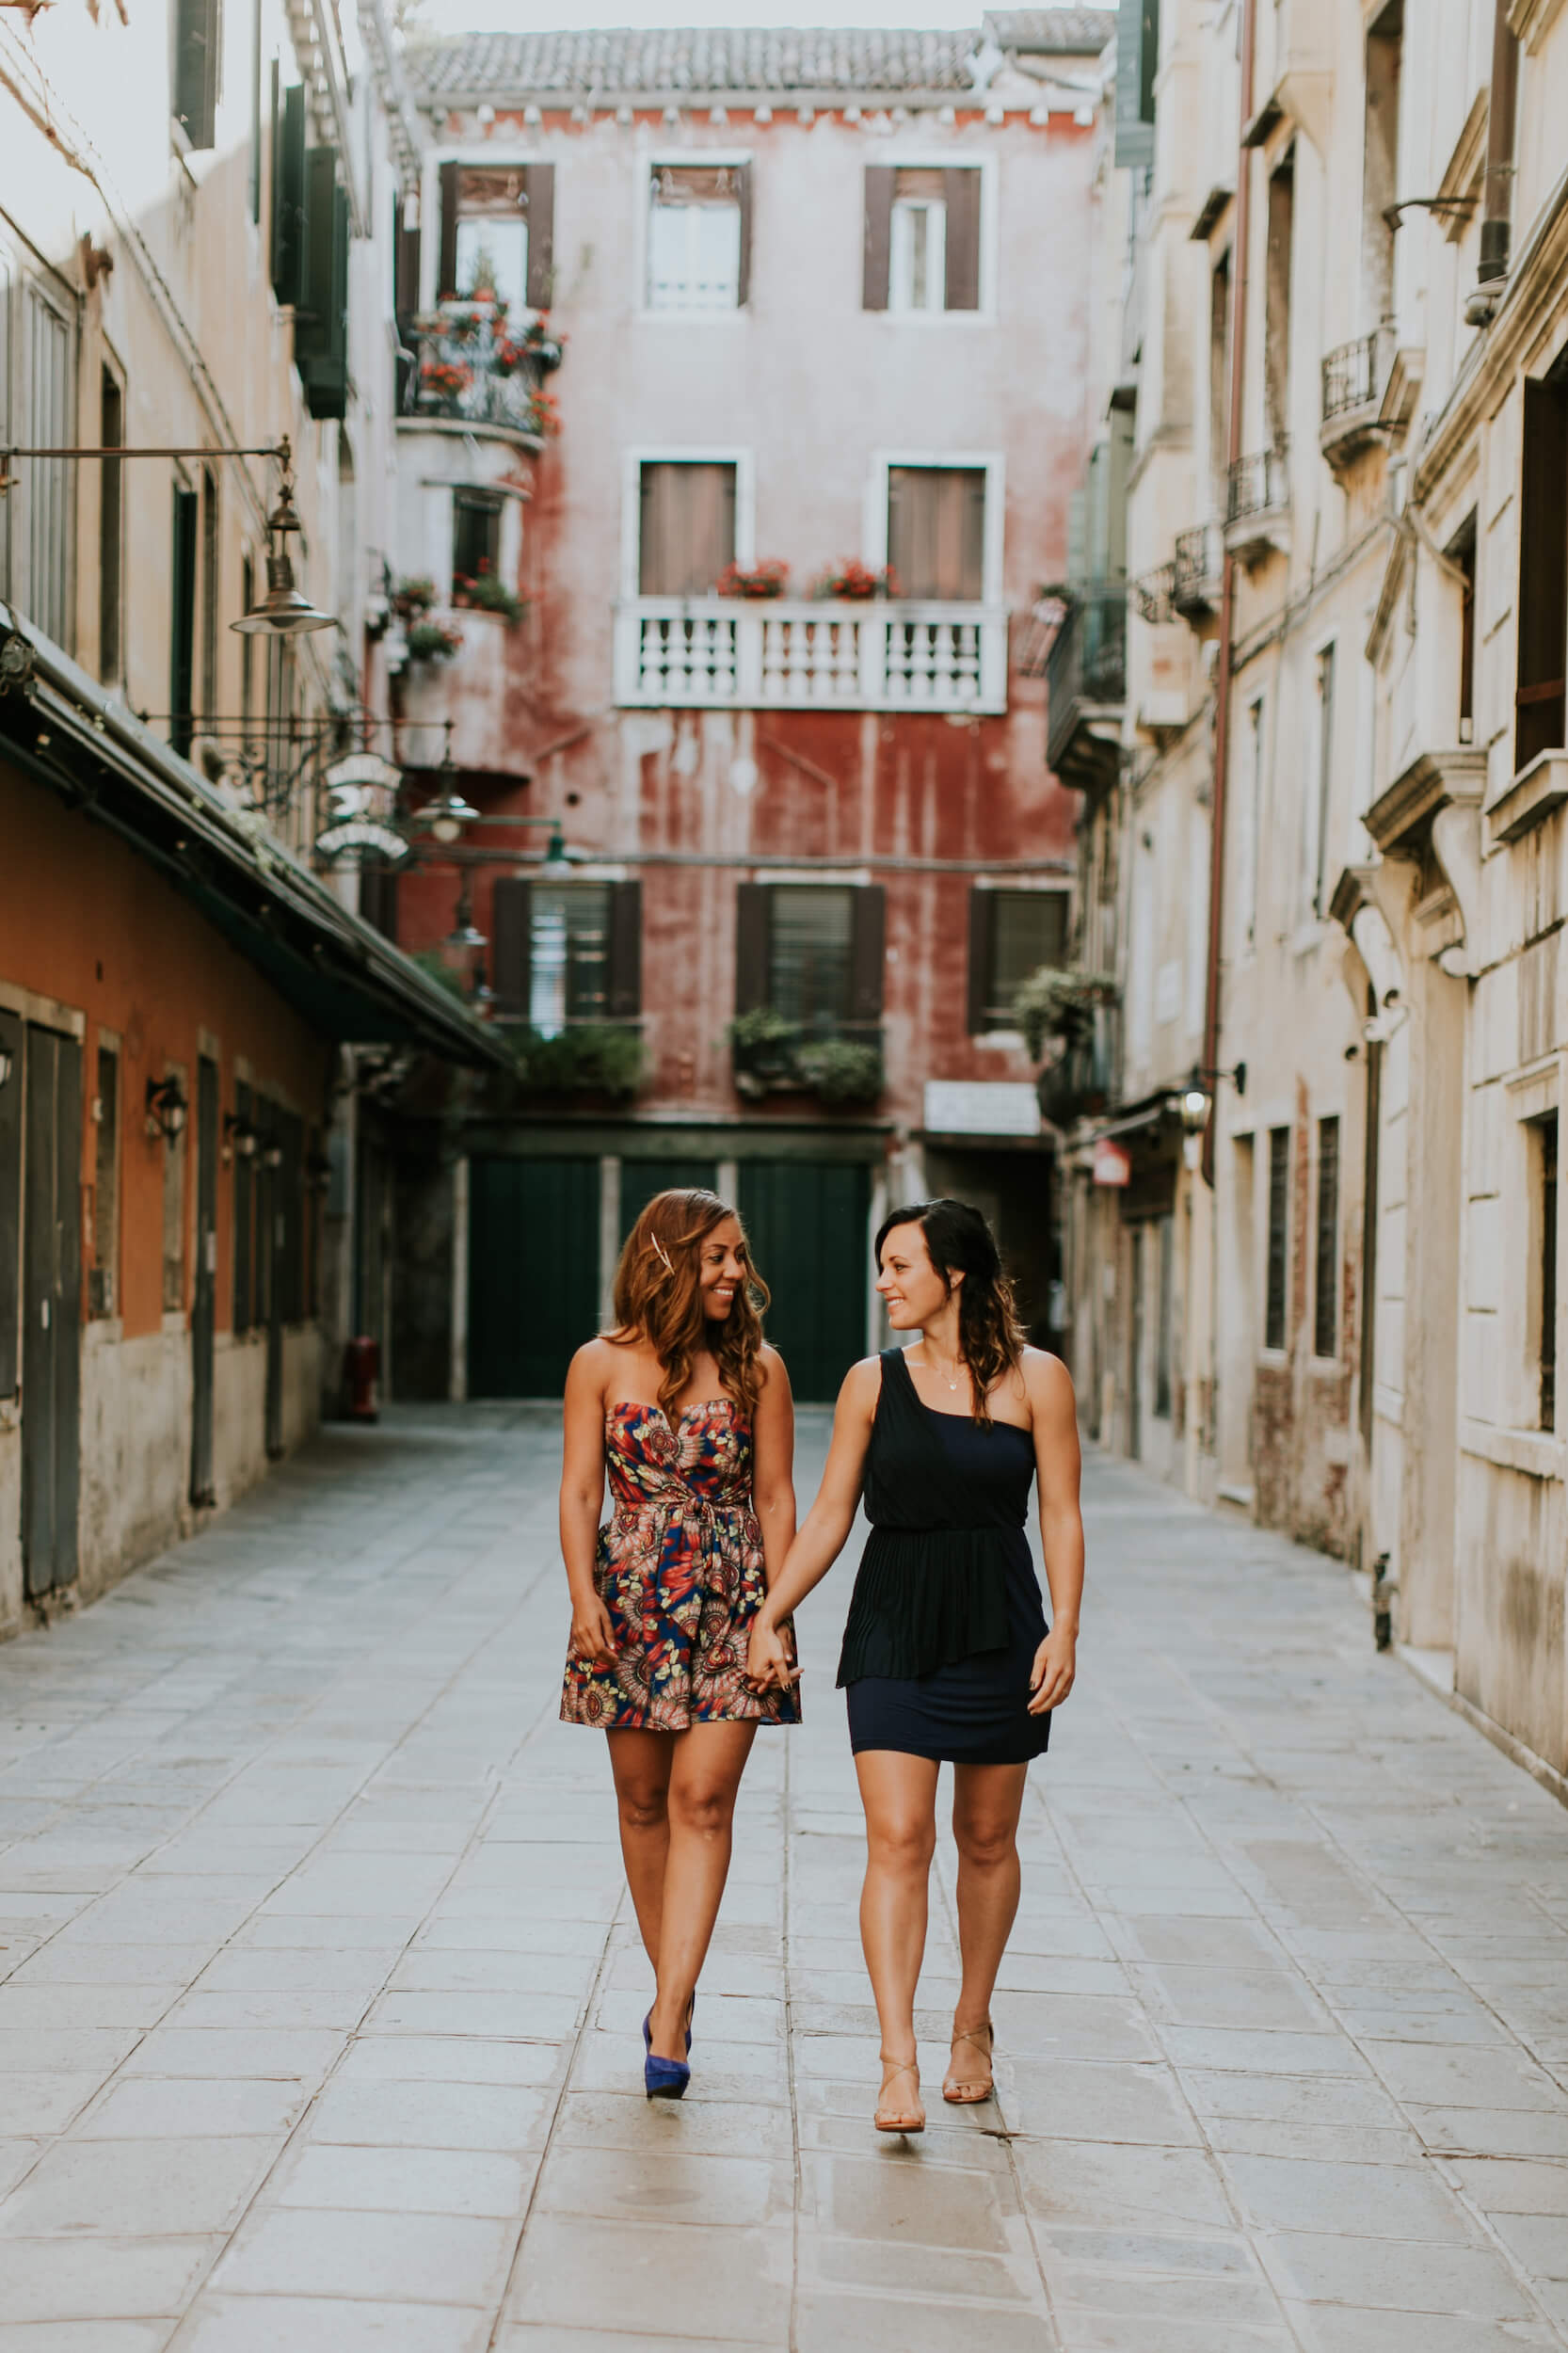 A Lesbian couple holds hands strolling the streets of Venice, Italy.